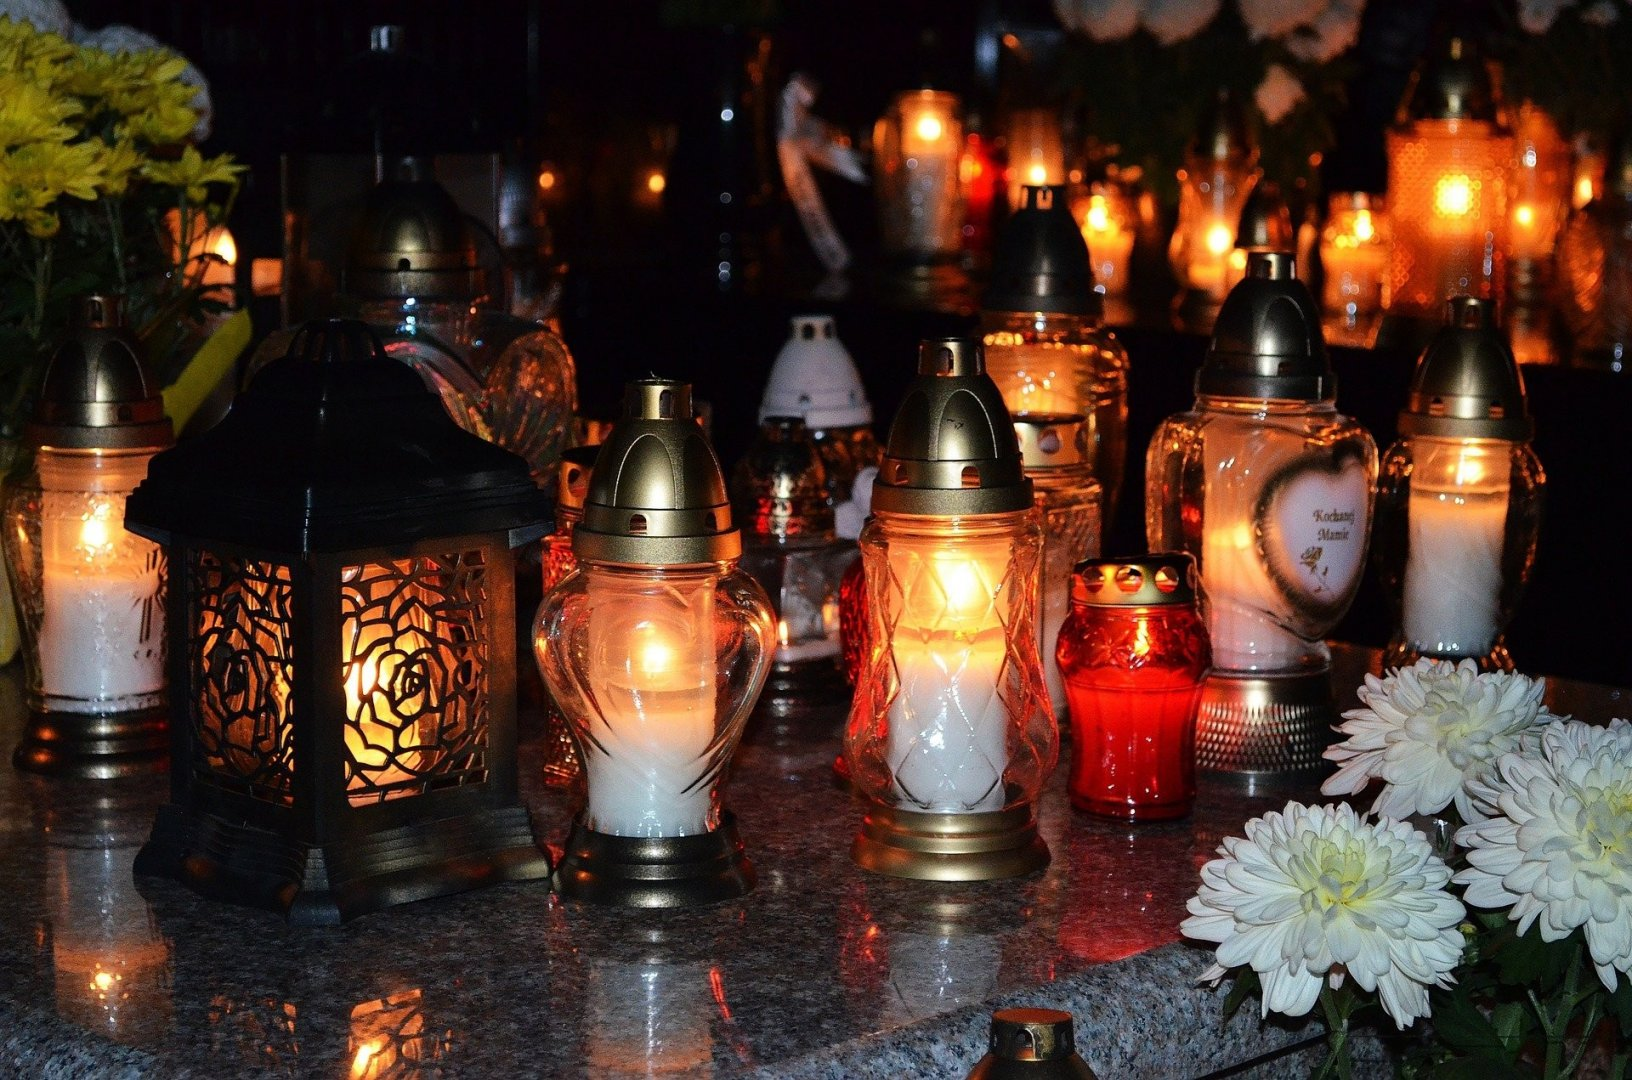 All Saints' Day traditions in Poland